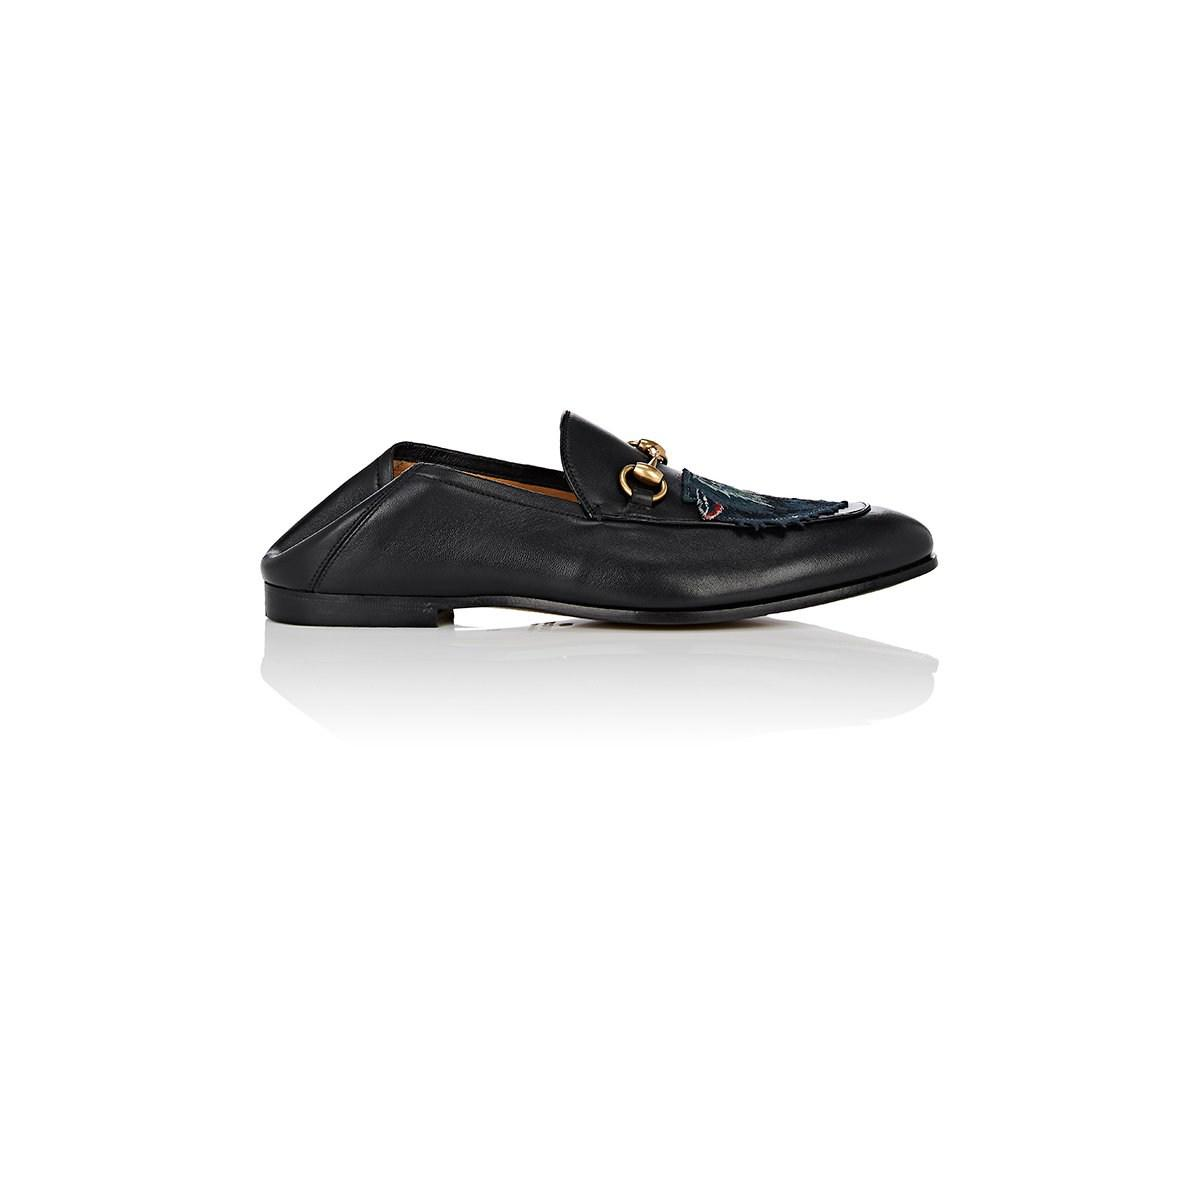 2f8e4660e Gucci Wolf-embroidered Leather Loafers in Black for Men - Lyst